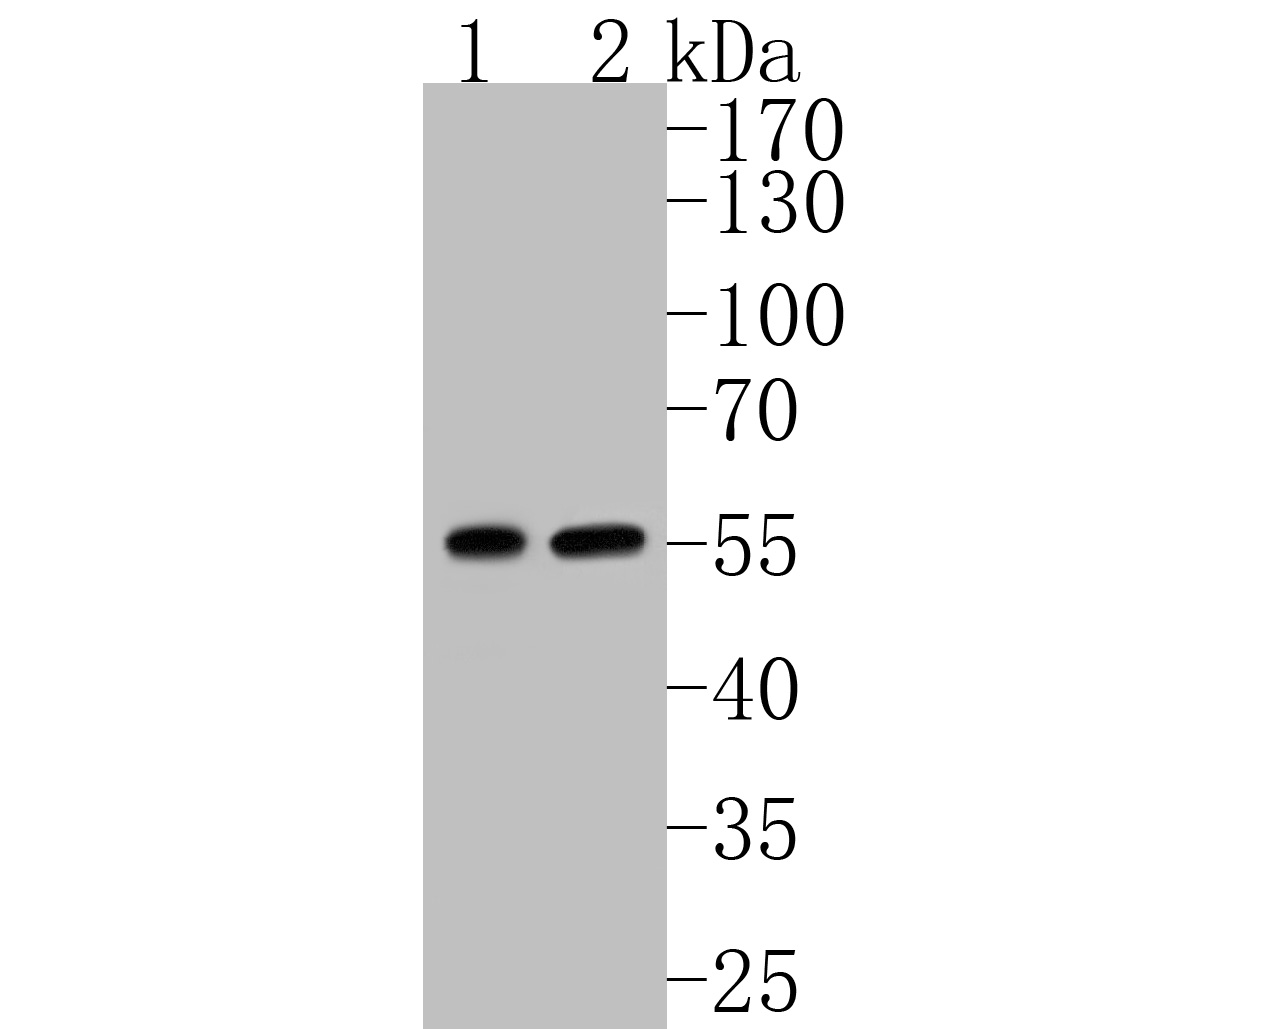 Western blot analysis of GLUD1 on different lysates. Proteins were transferred to a PVDF membrane and blocked with 5% BSA in PBS for 1 hour at room temperature. The primary antibody (ER1902-85, 1/500) was used in 5% BSA at room temperature for 2 hours. Goat Anti-Rabbit IgG - HRP Secondary Antibody (HA1001) at 1:5,000 dilution was used for 1 hour at room temperature.<br />  Positive control: <br />  Lane 1: Hela cell lysate<br />  Lane 2: HepG2 cell lysate